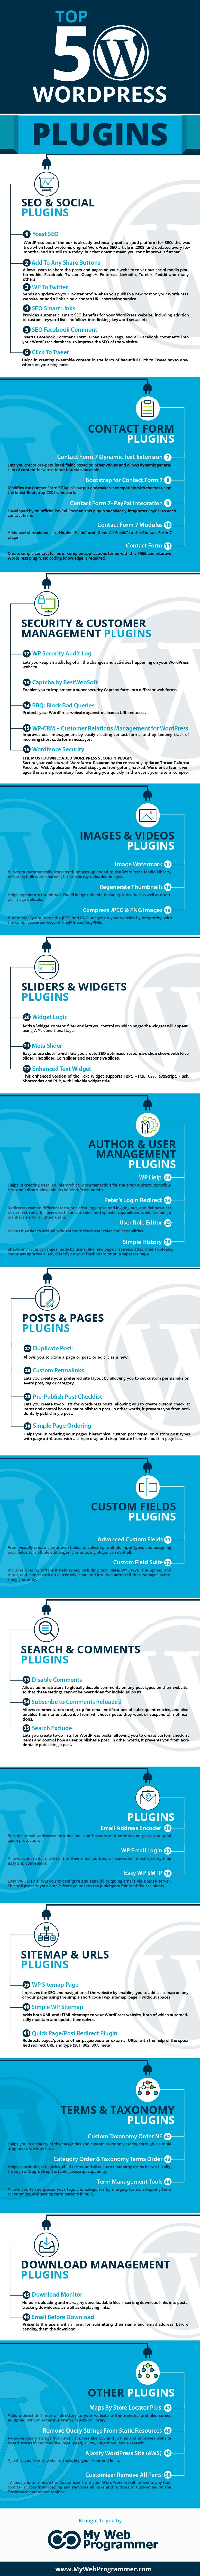 wordpress plugin infographic